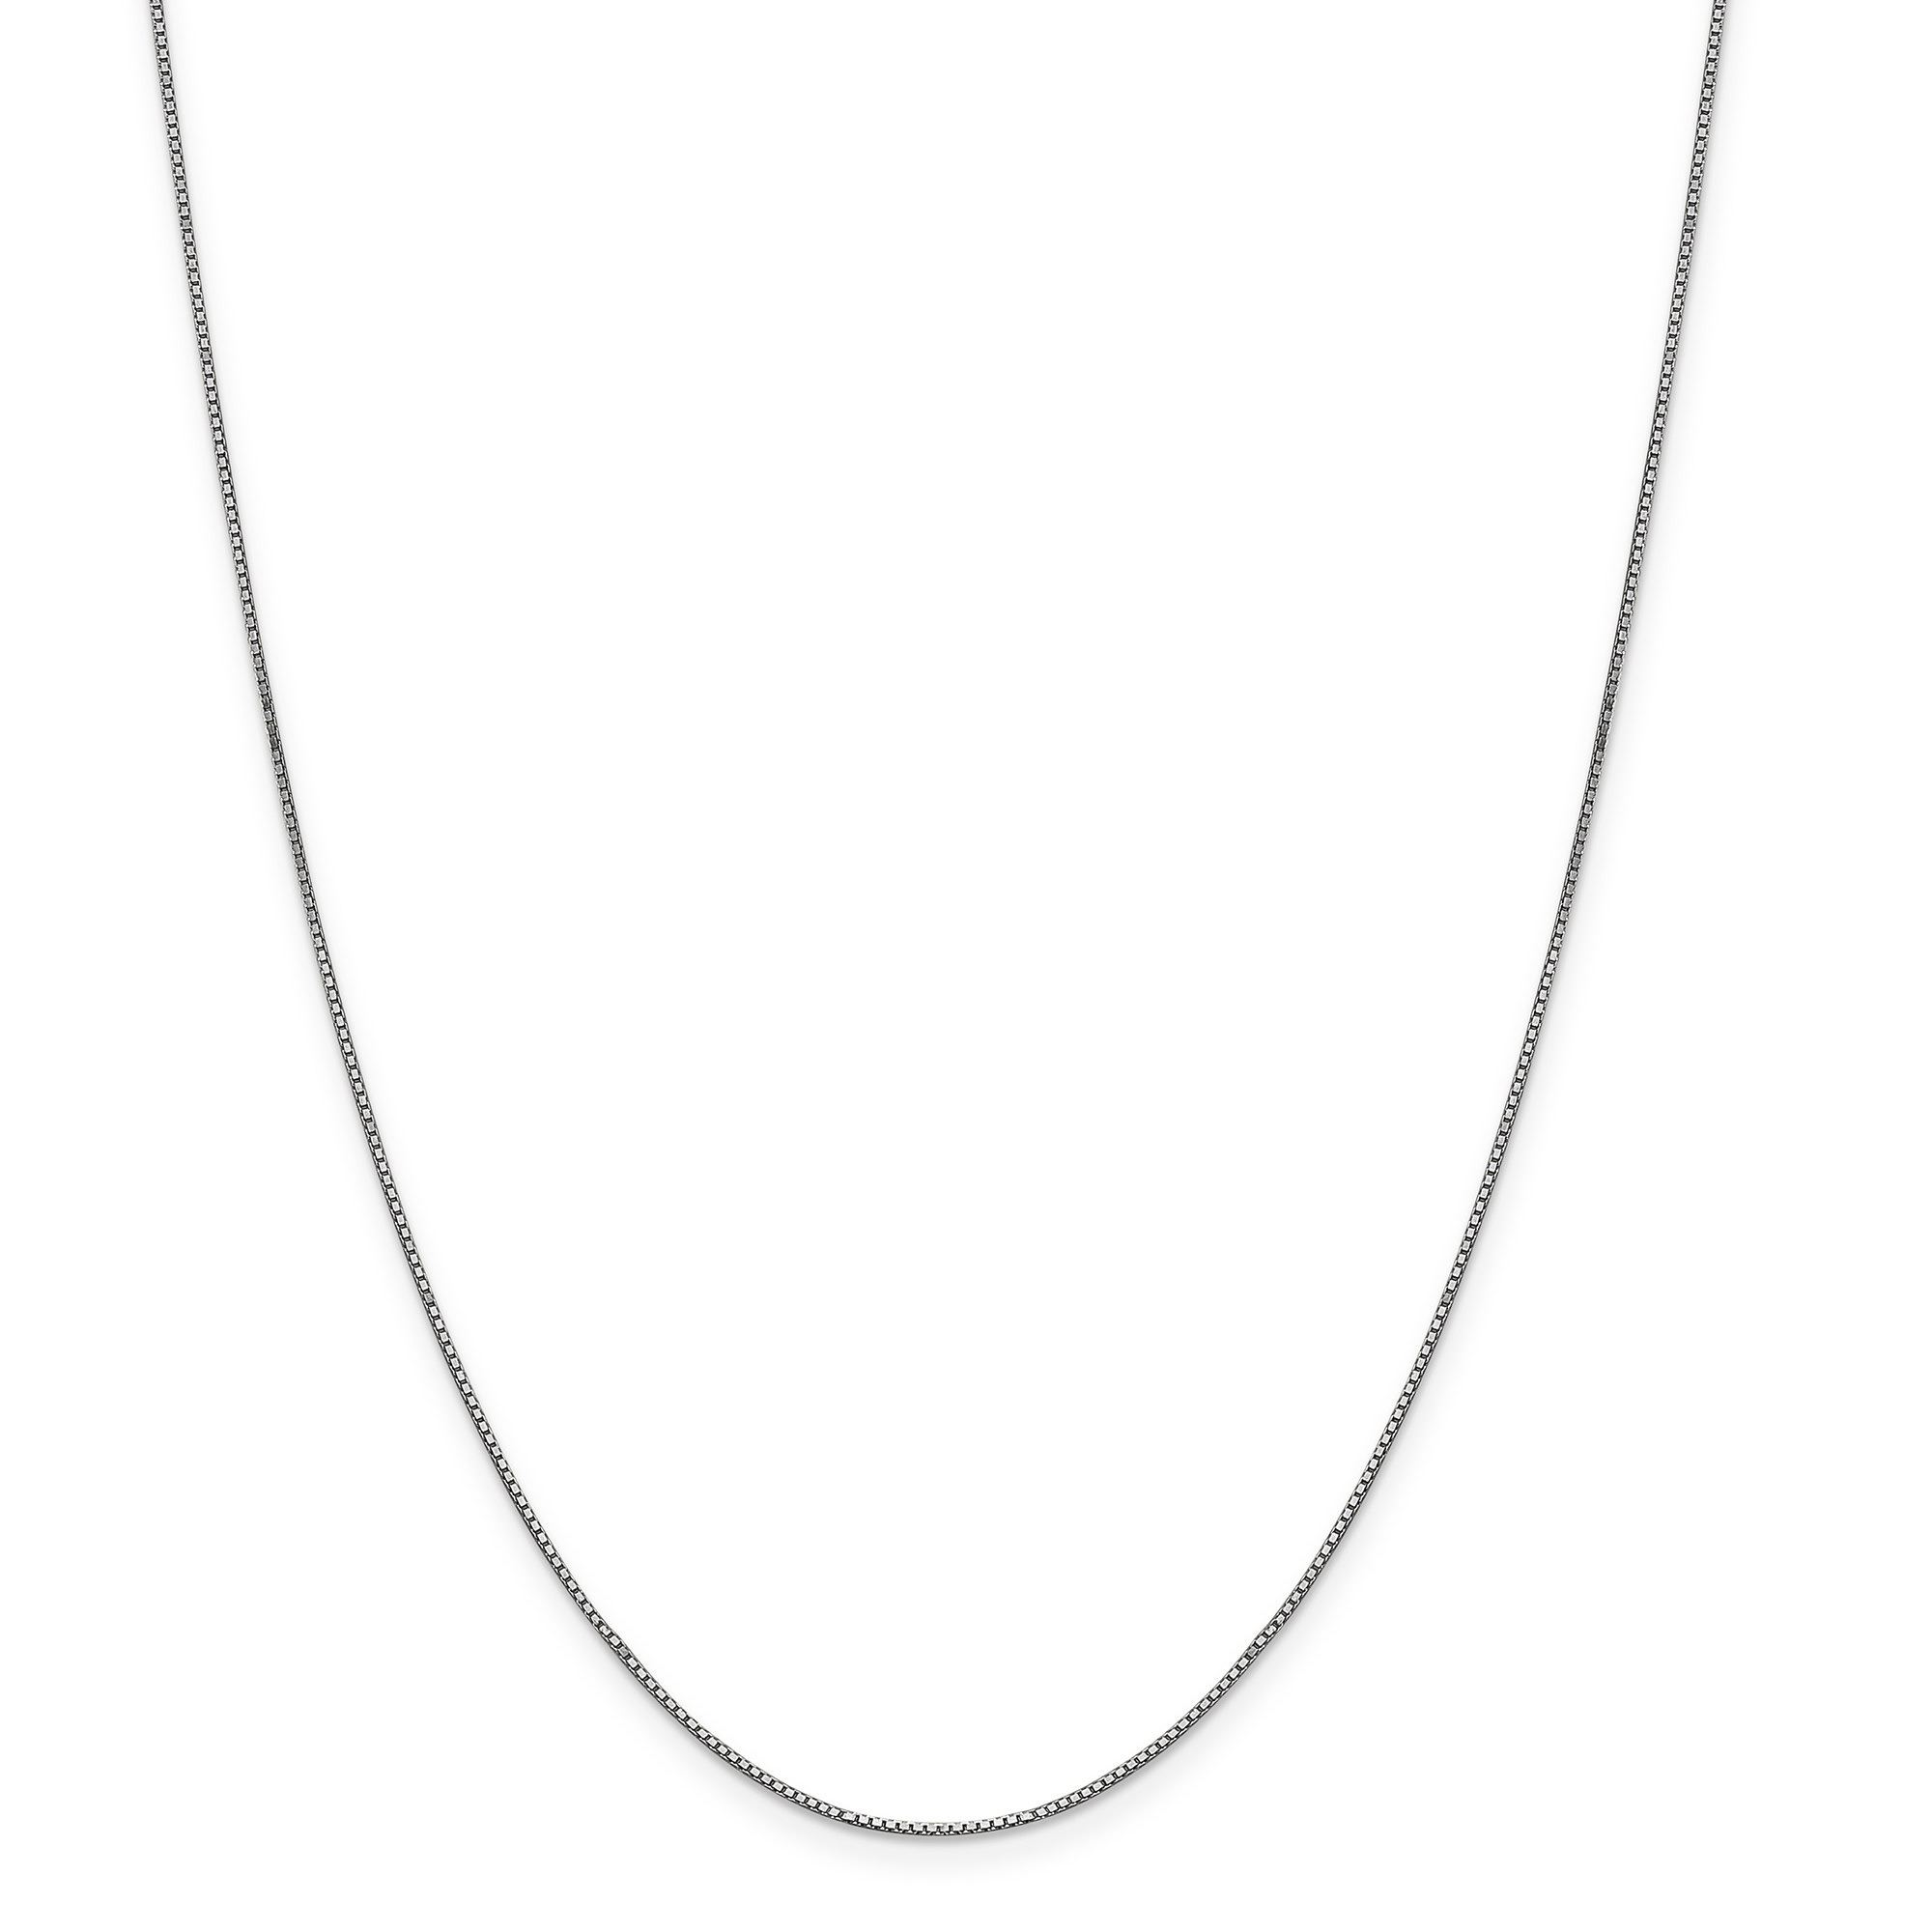 10k White Gold .90mm Link Box Chain Necklace 24 Inch Pendant Charm Fine Jewelry Gifts For Women For Her - image 5 of 5